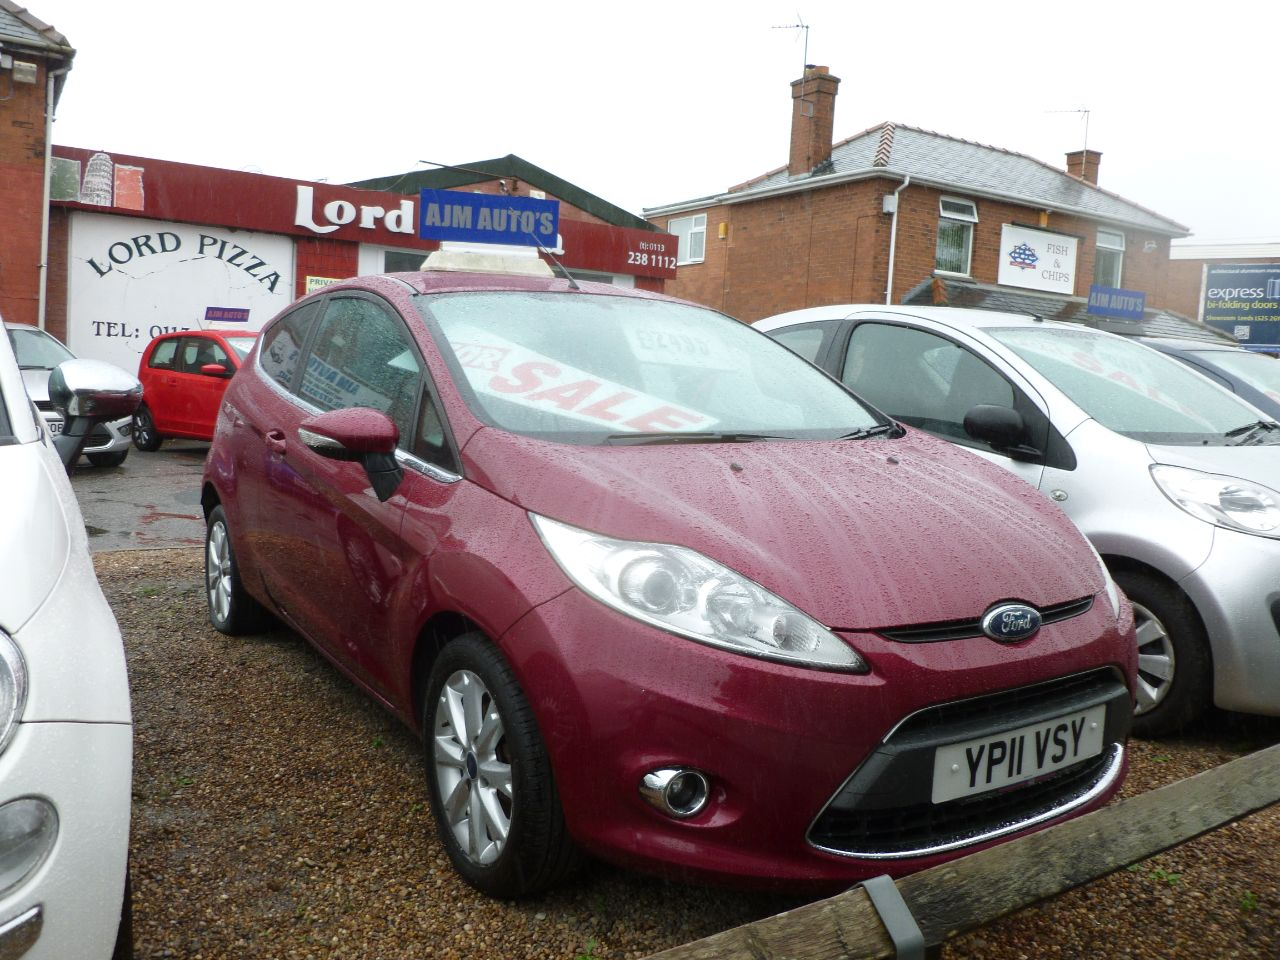 Ford Fiesta 1.25 Zetec 3dr [82] Hatchback Petrol Red at AJM Autos Leeds Leeds